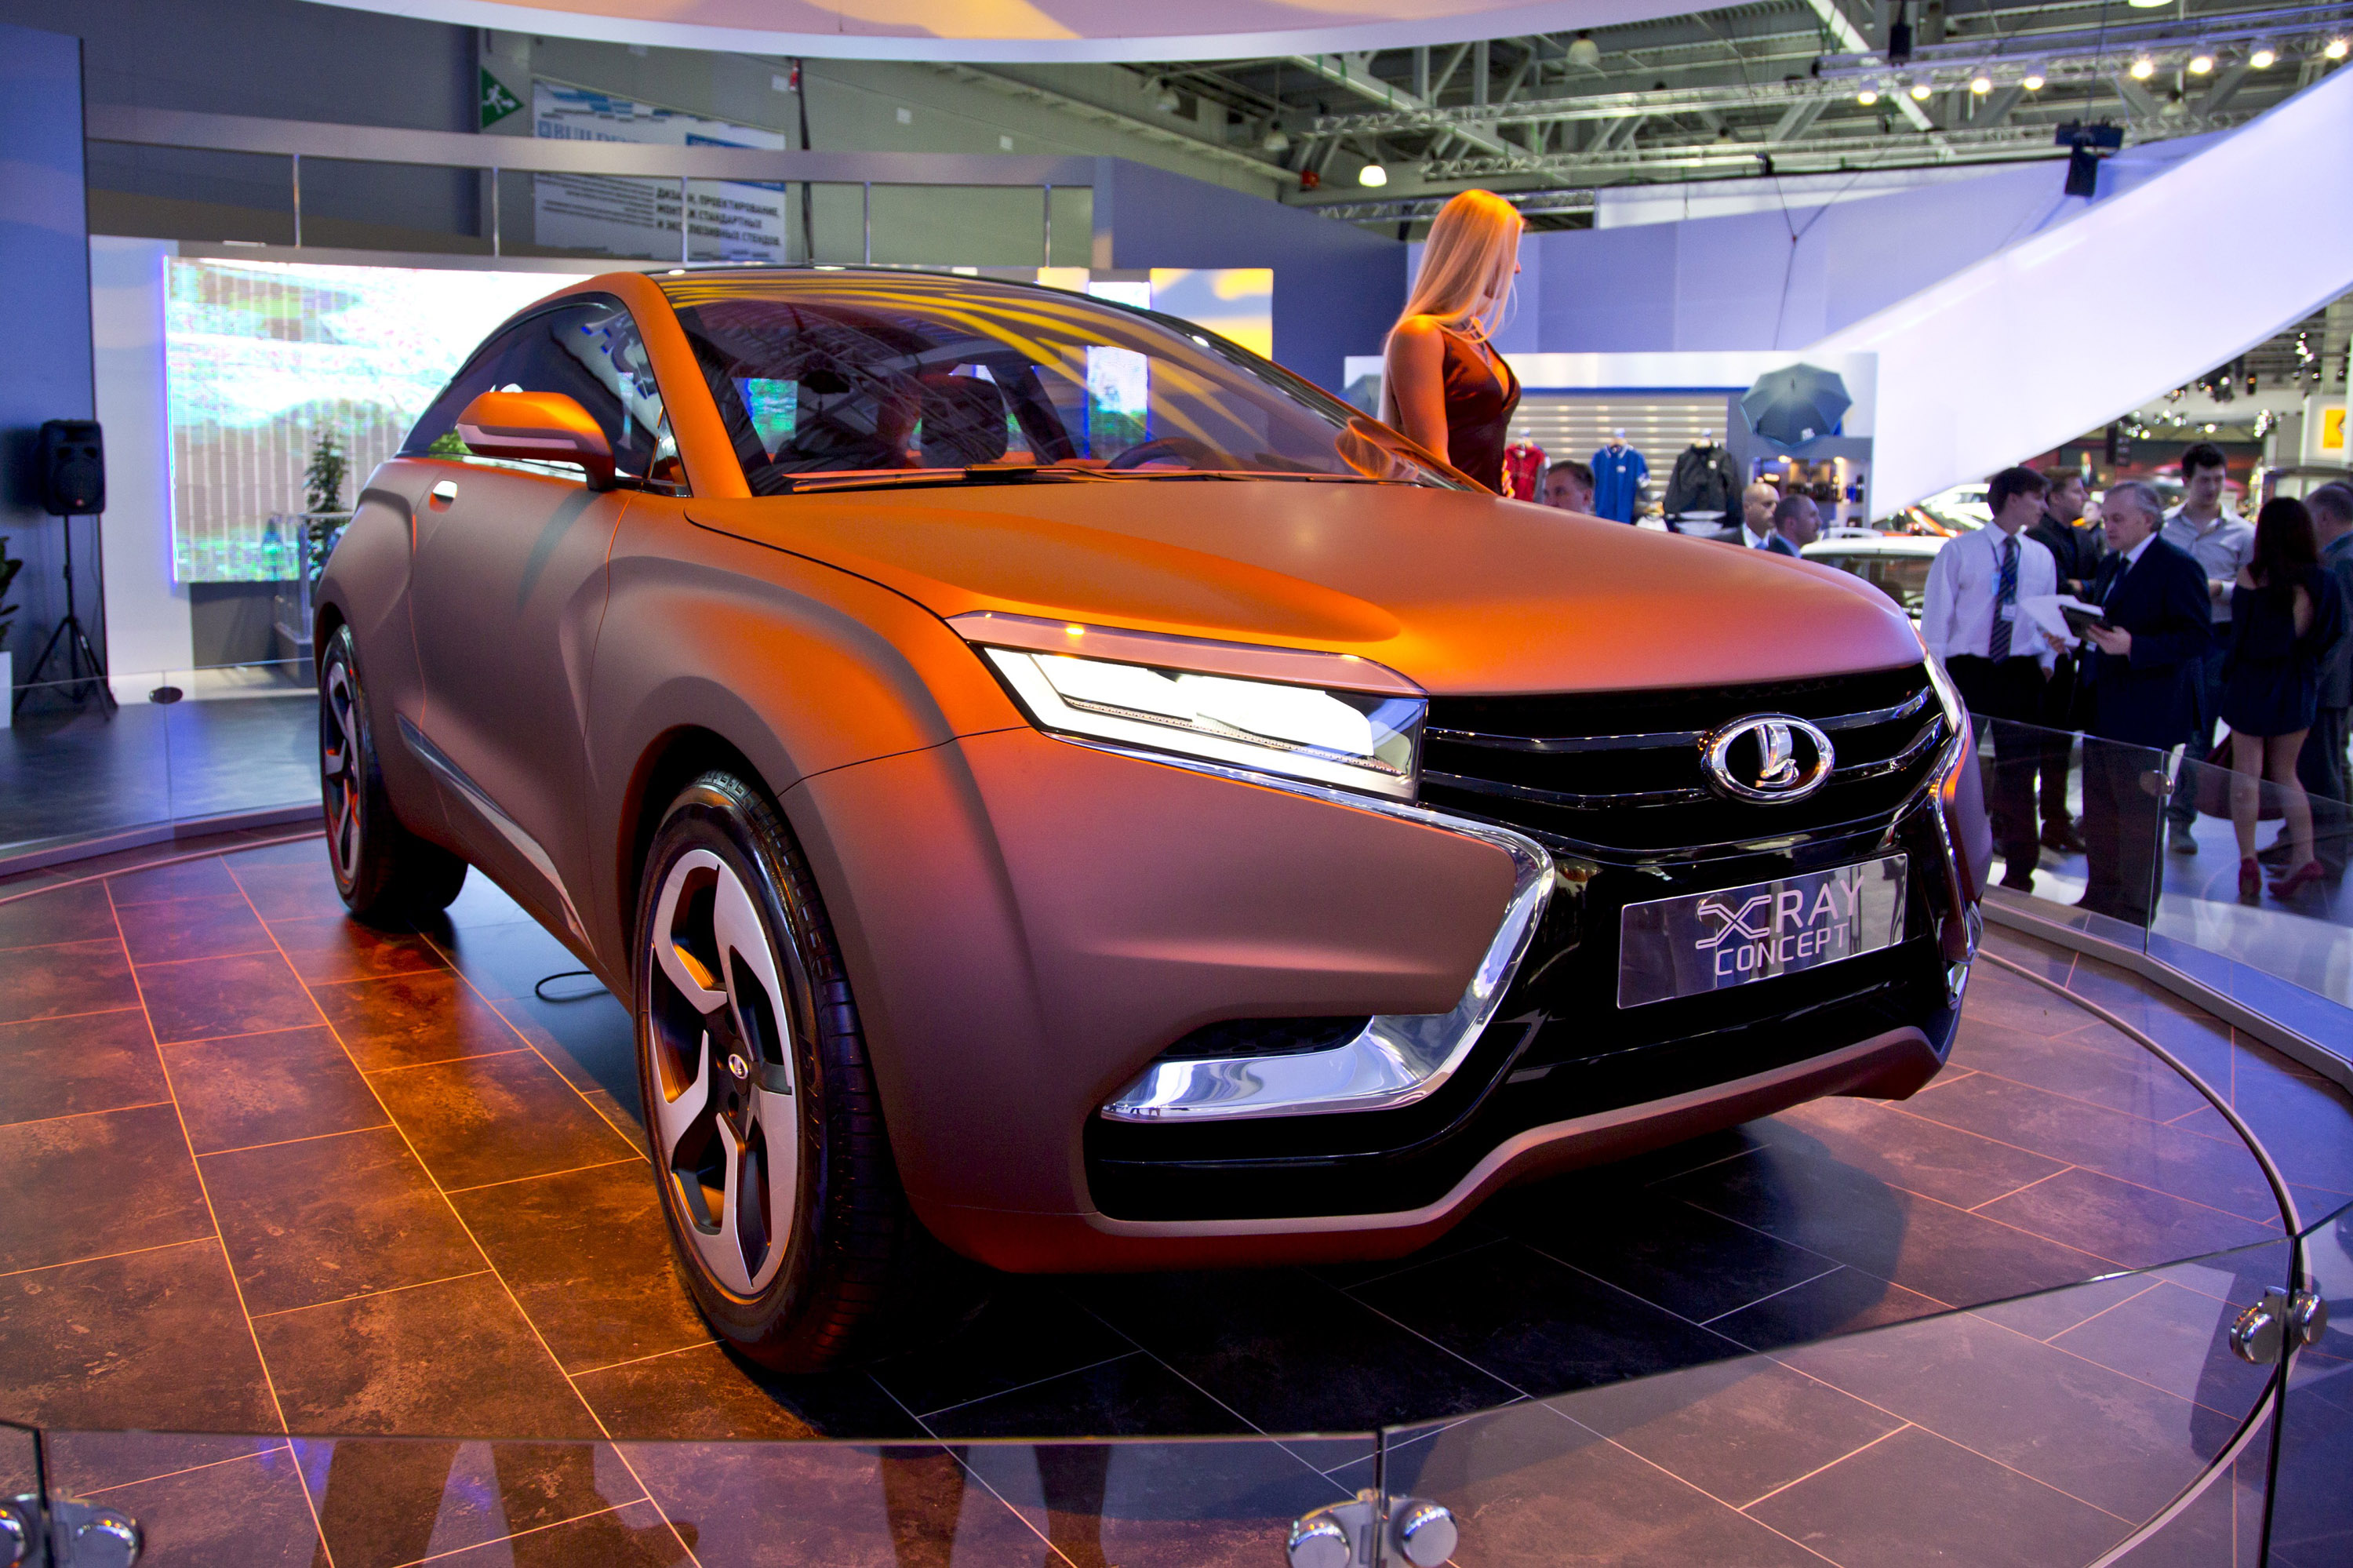 Exclusive Car Wallpapers 2013 Lada X Ray Concept World Premiere In Moscow Video